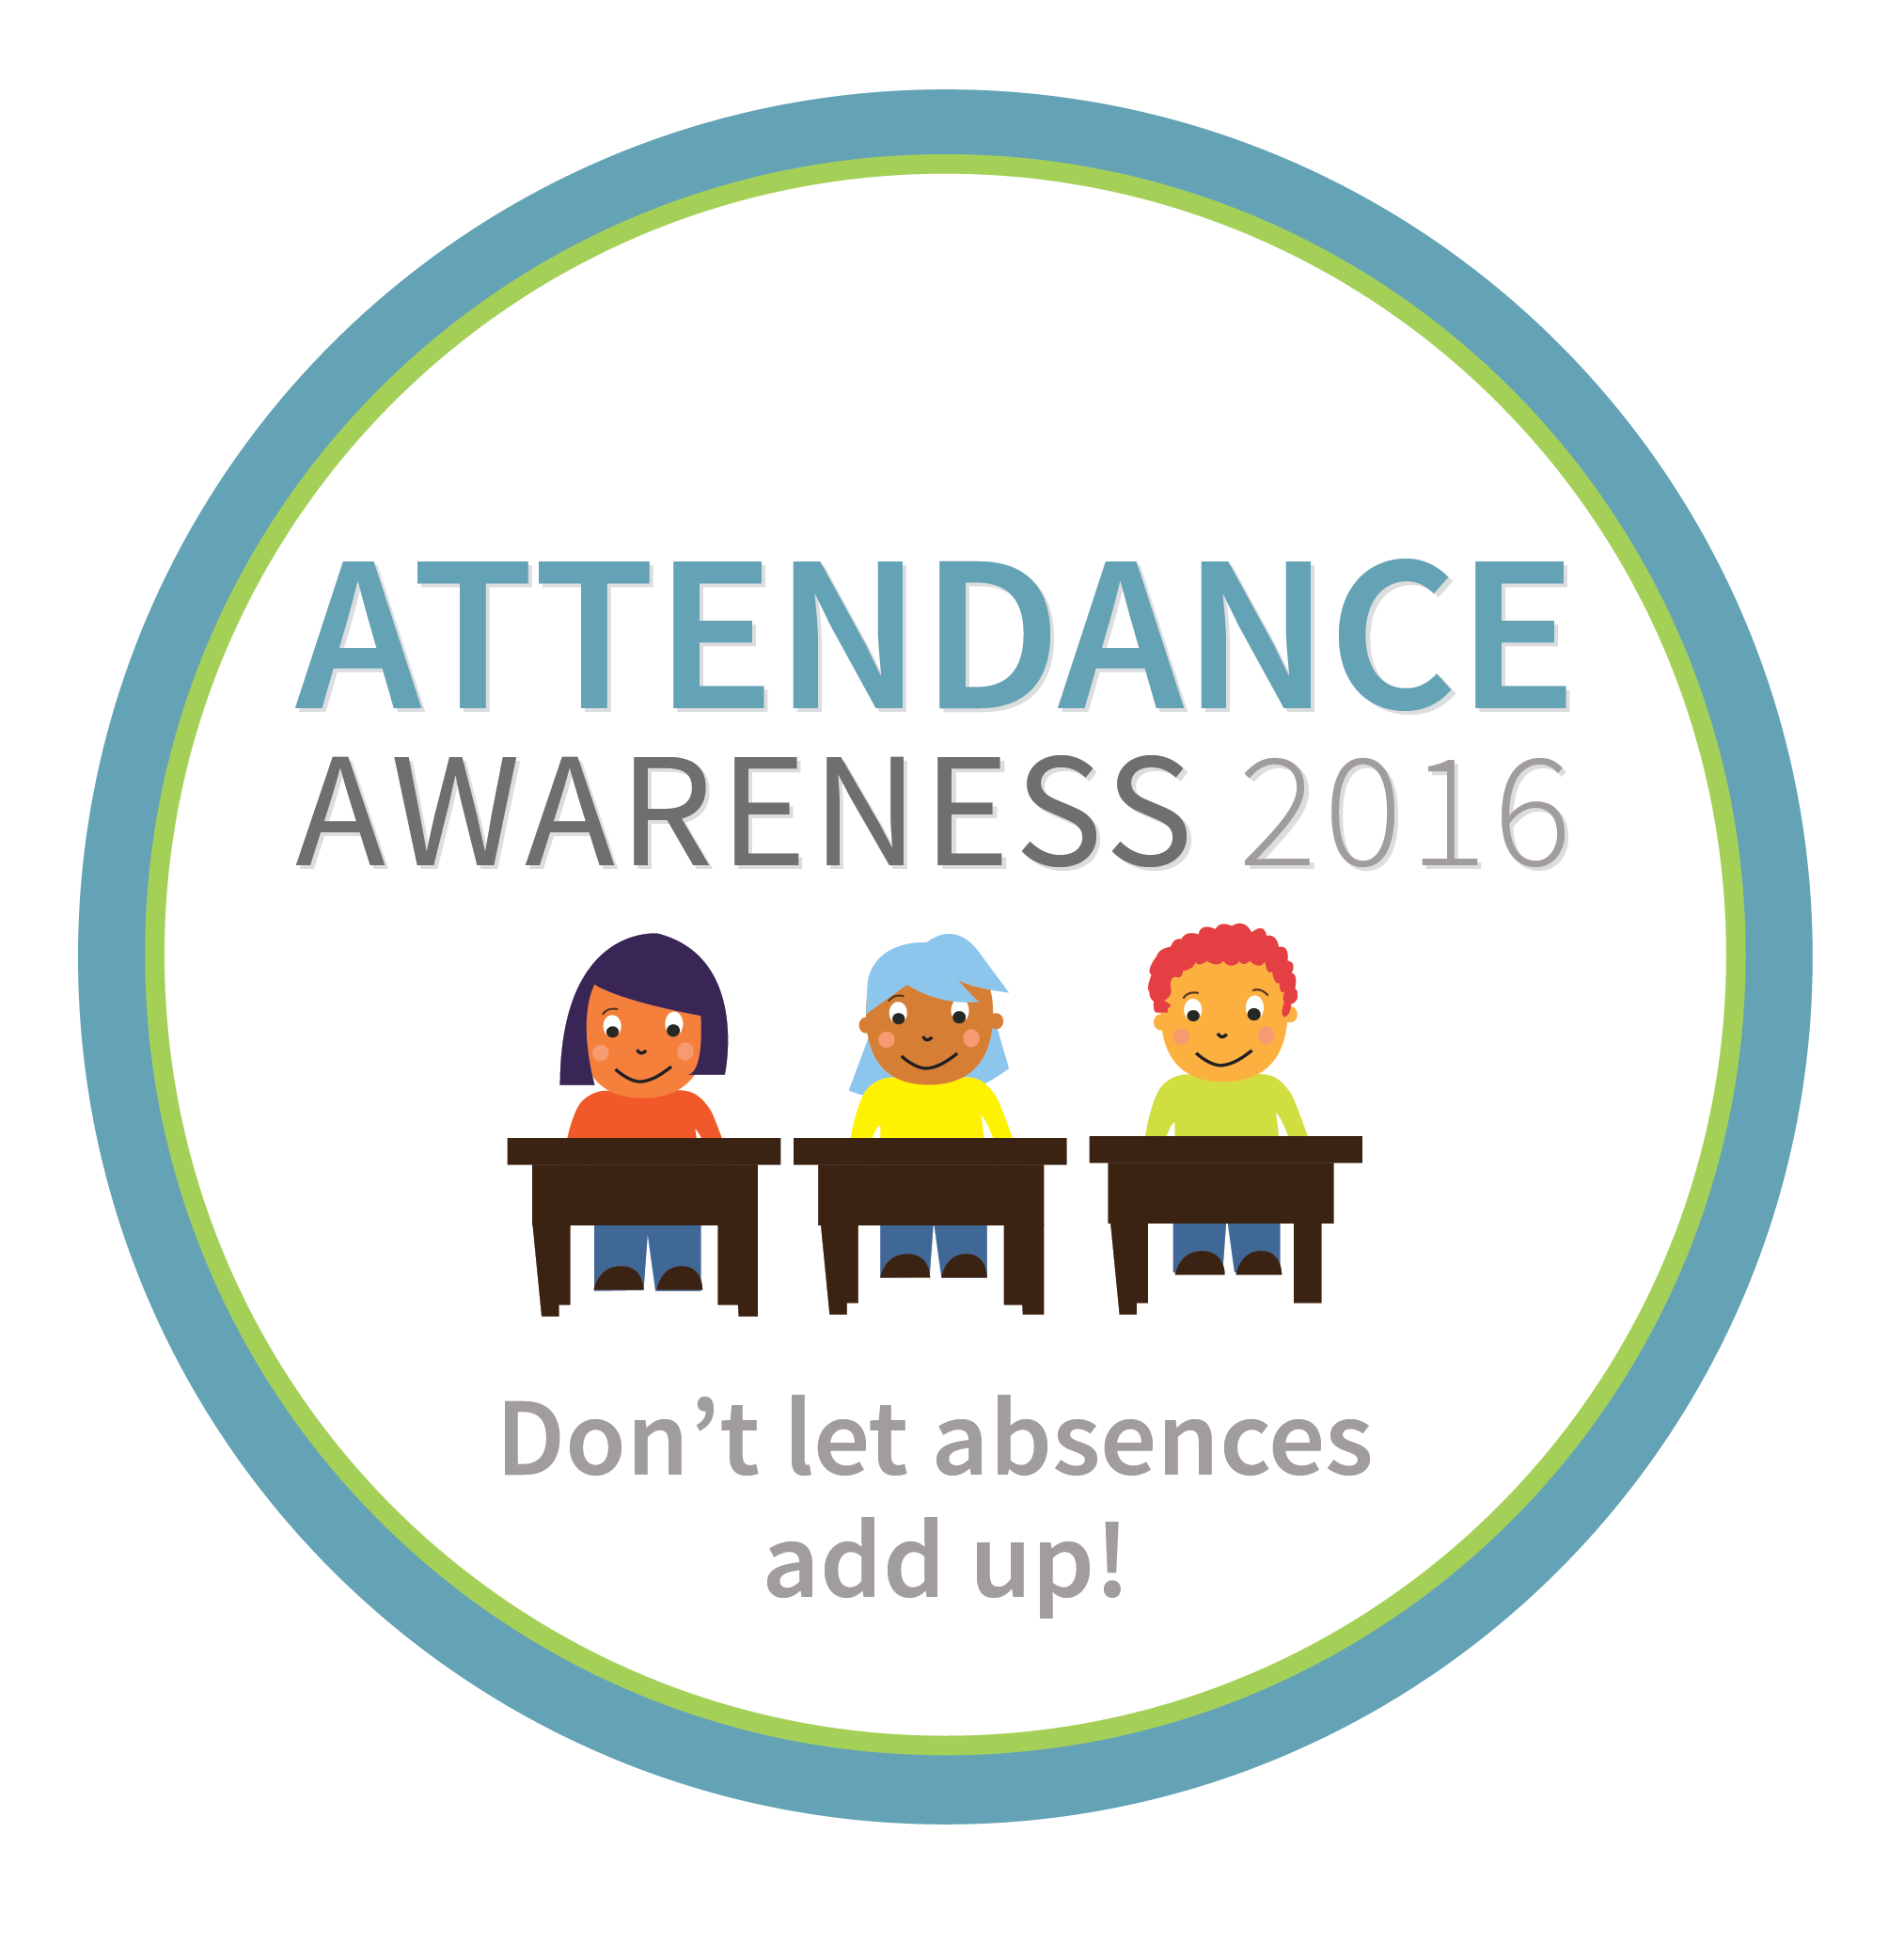 Schedule clipart daily attendance. Works initiative to increase